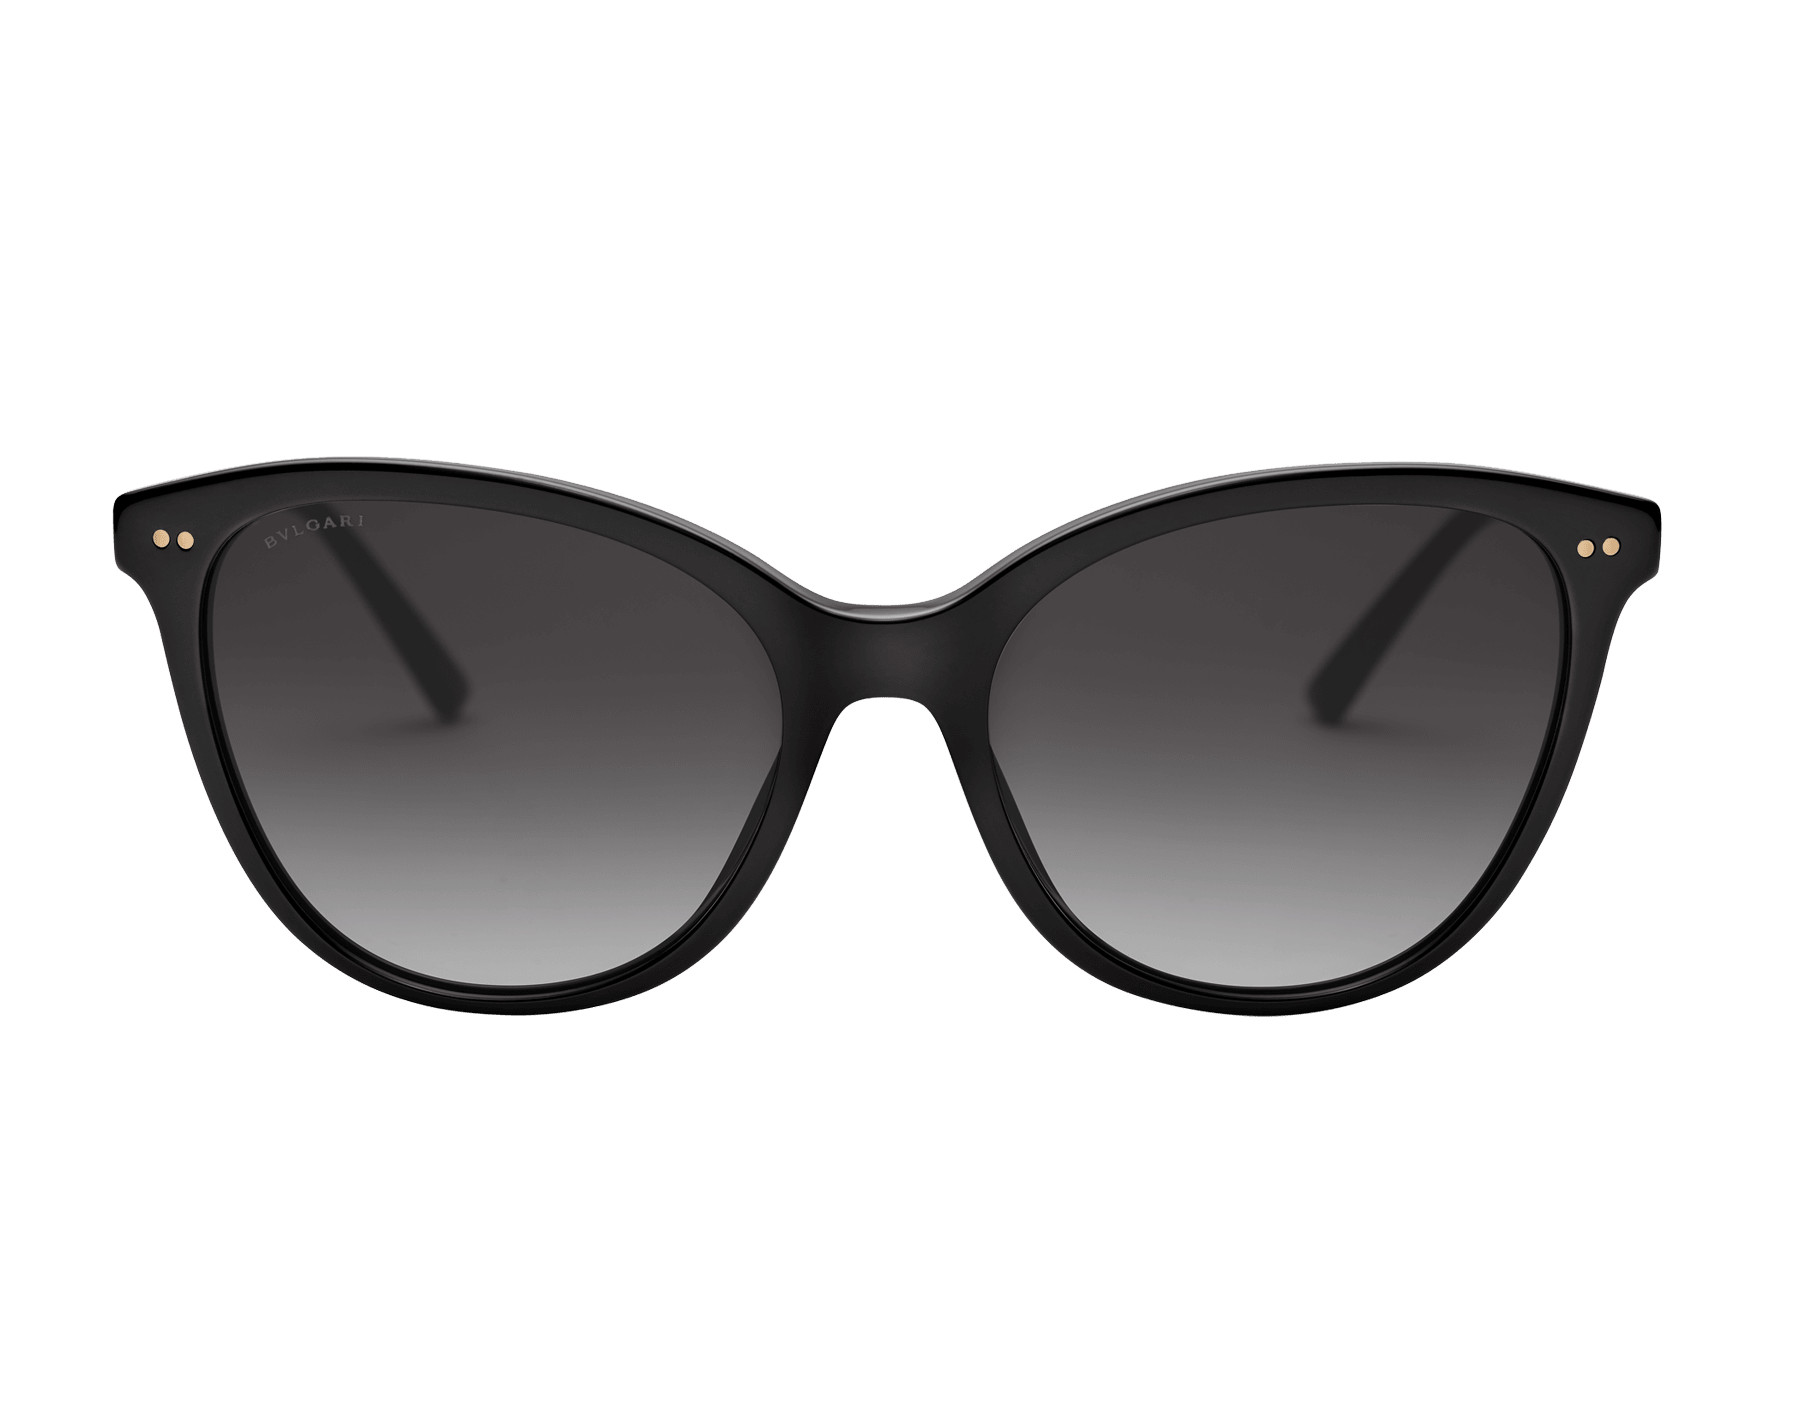 B.zero1 acetate cat-eye sunglasses 904086 image 2